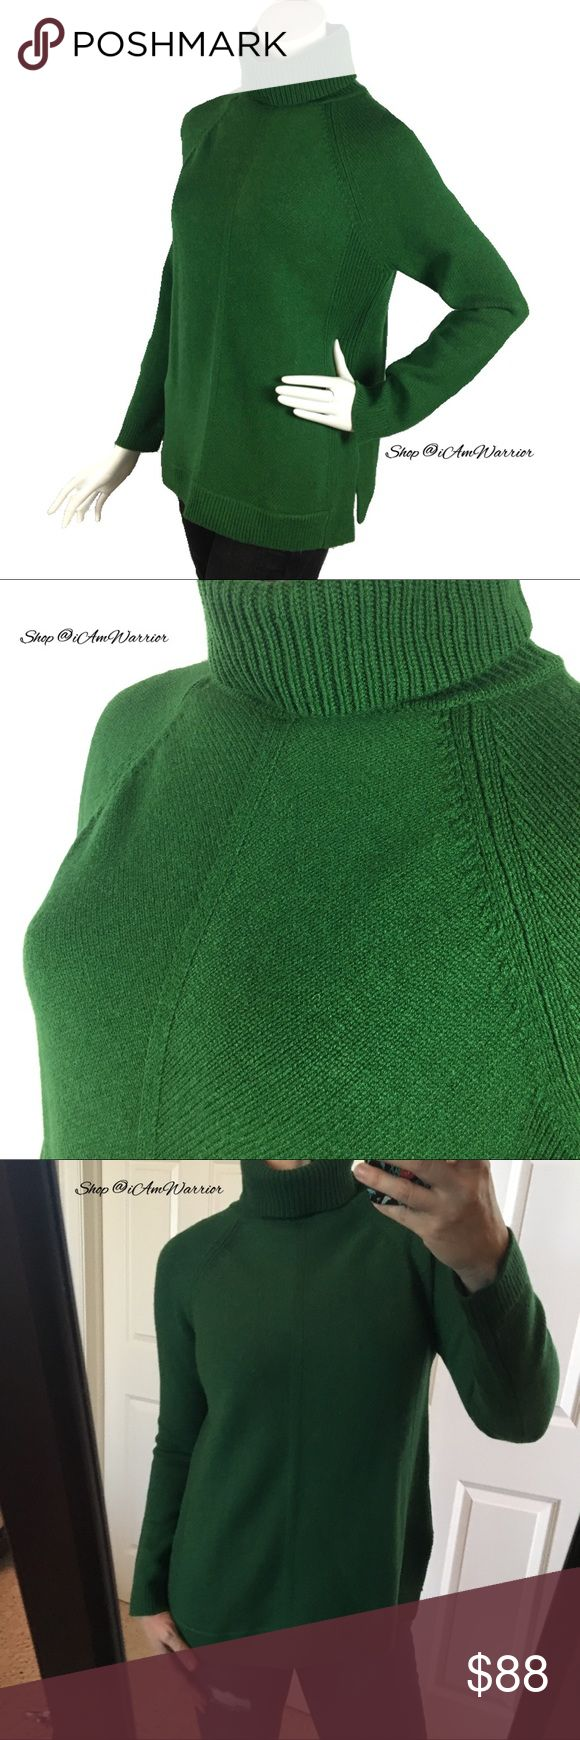 Boden NWT green turtleneck sweater Beautiful relaxed fit Boden turtleneck sweater in the prettiest shade of evergreen. Pretty center seam & side slide detail. Perfect with demin or leggings. A perfect holiday color/gift! See photos for measurements. Please read my bio regarding closet policies prior to any inquiries. Boden Sweaters Cowl & Turtlenecks